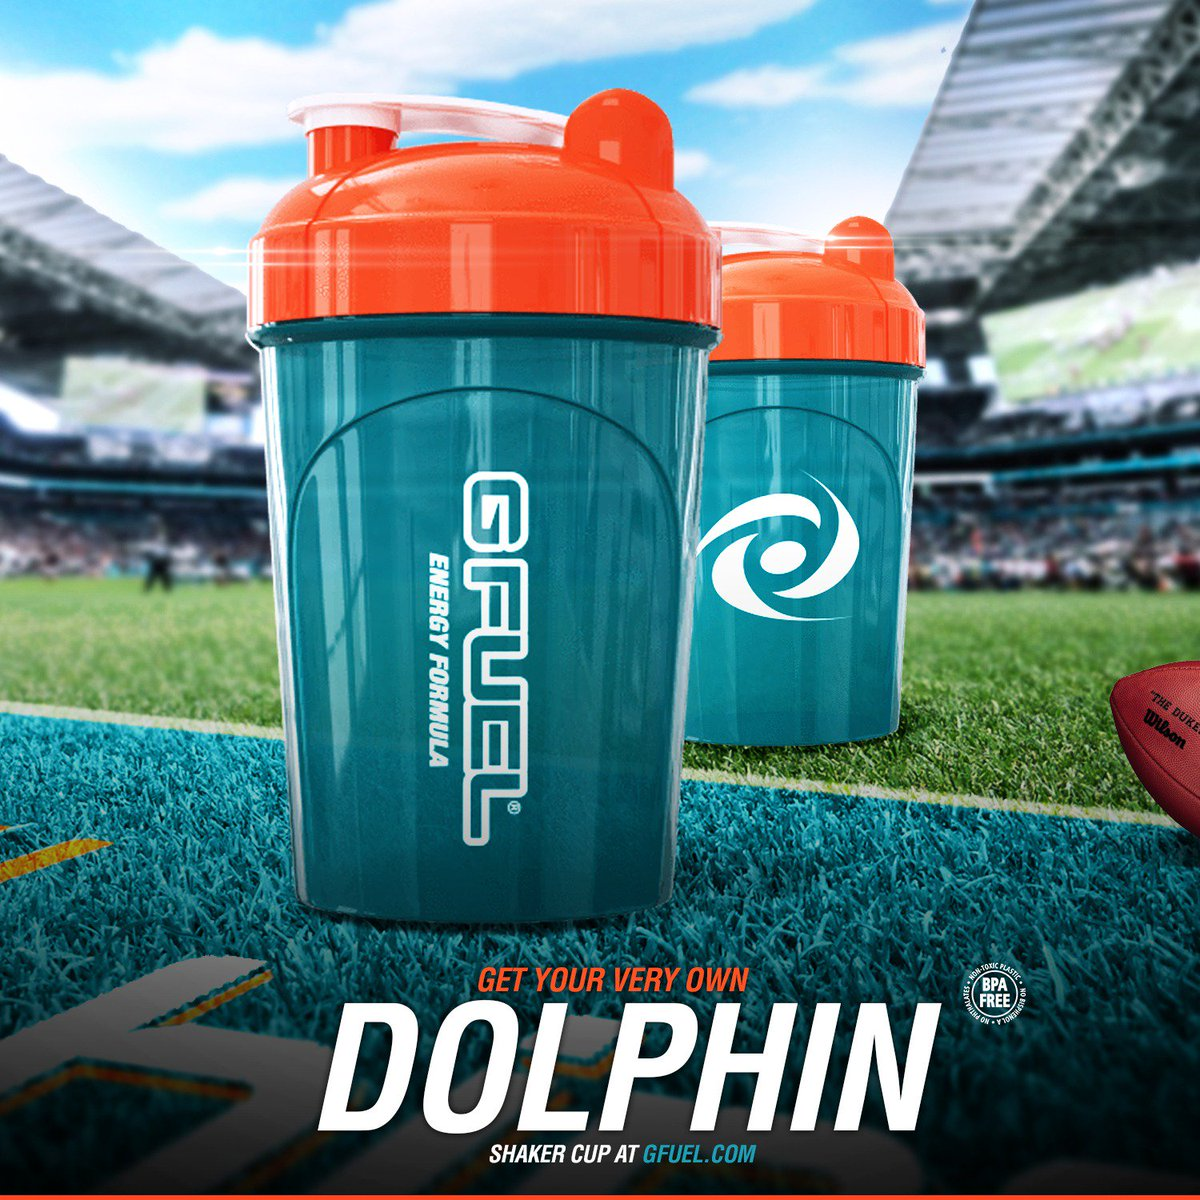 New @GFuelEnergy x @MiamiDolphins advertisement!  Likes &amp; RTs are appreciated  Full project in HD:  https:// toxin.myportfolio.com/miami-dolphins -x-gfuel &nbsp; …   @bymarkoss x #MarkosContest<br>http://pic.twitter.com/CD2MzWrNrg